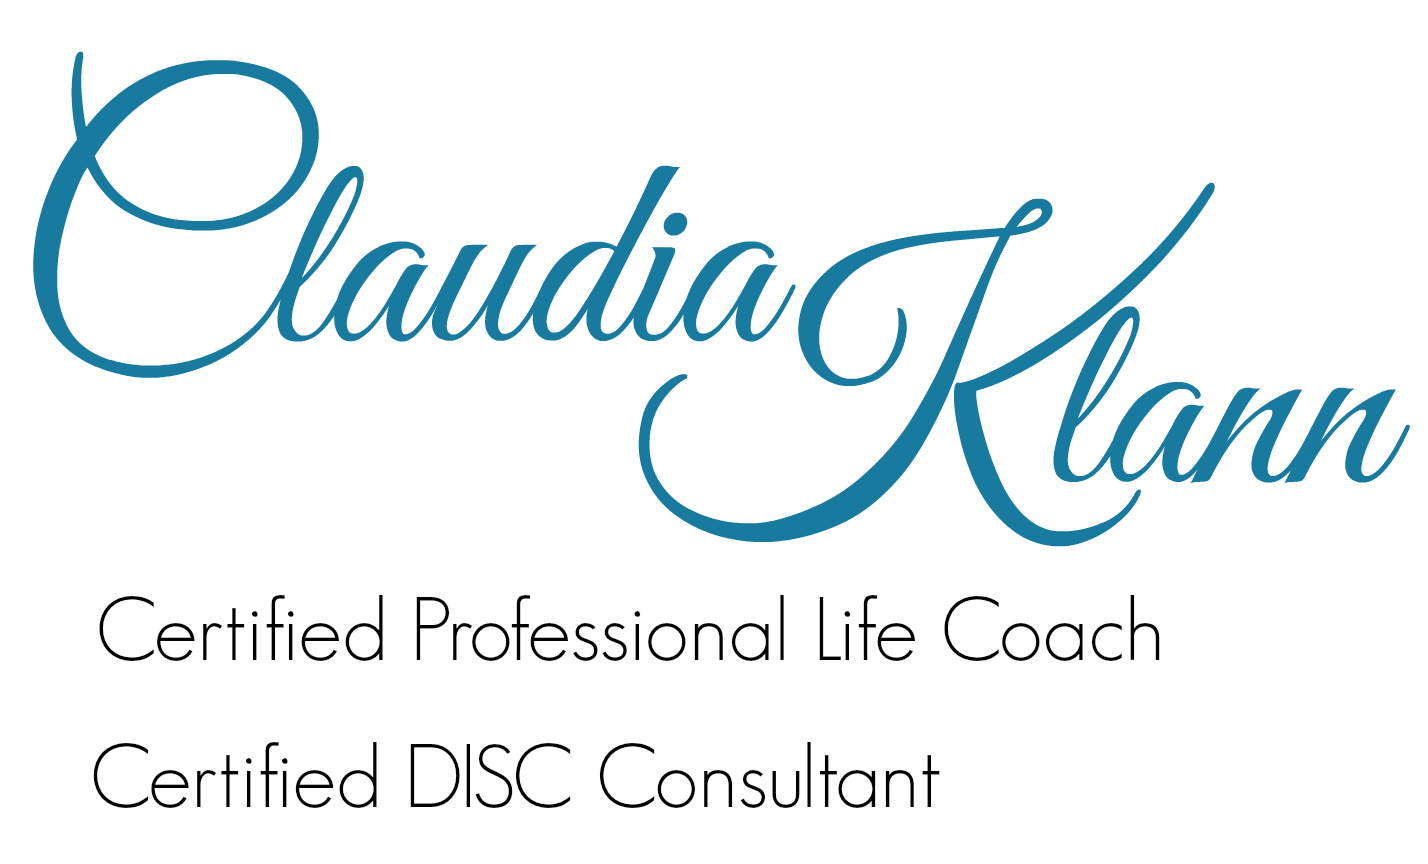 Claudia Klann, Christian Life Coaching and Ministry